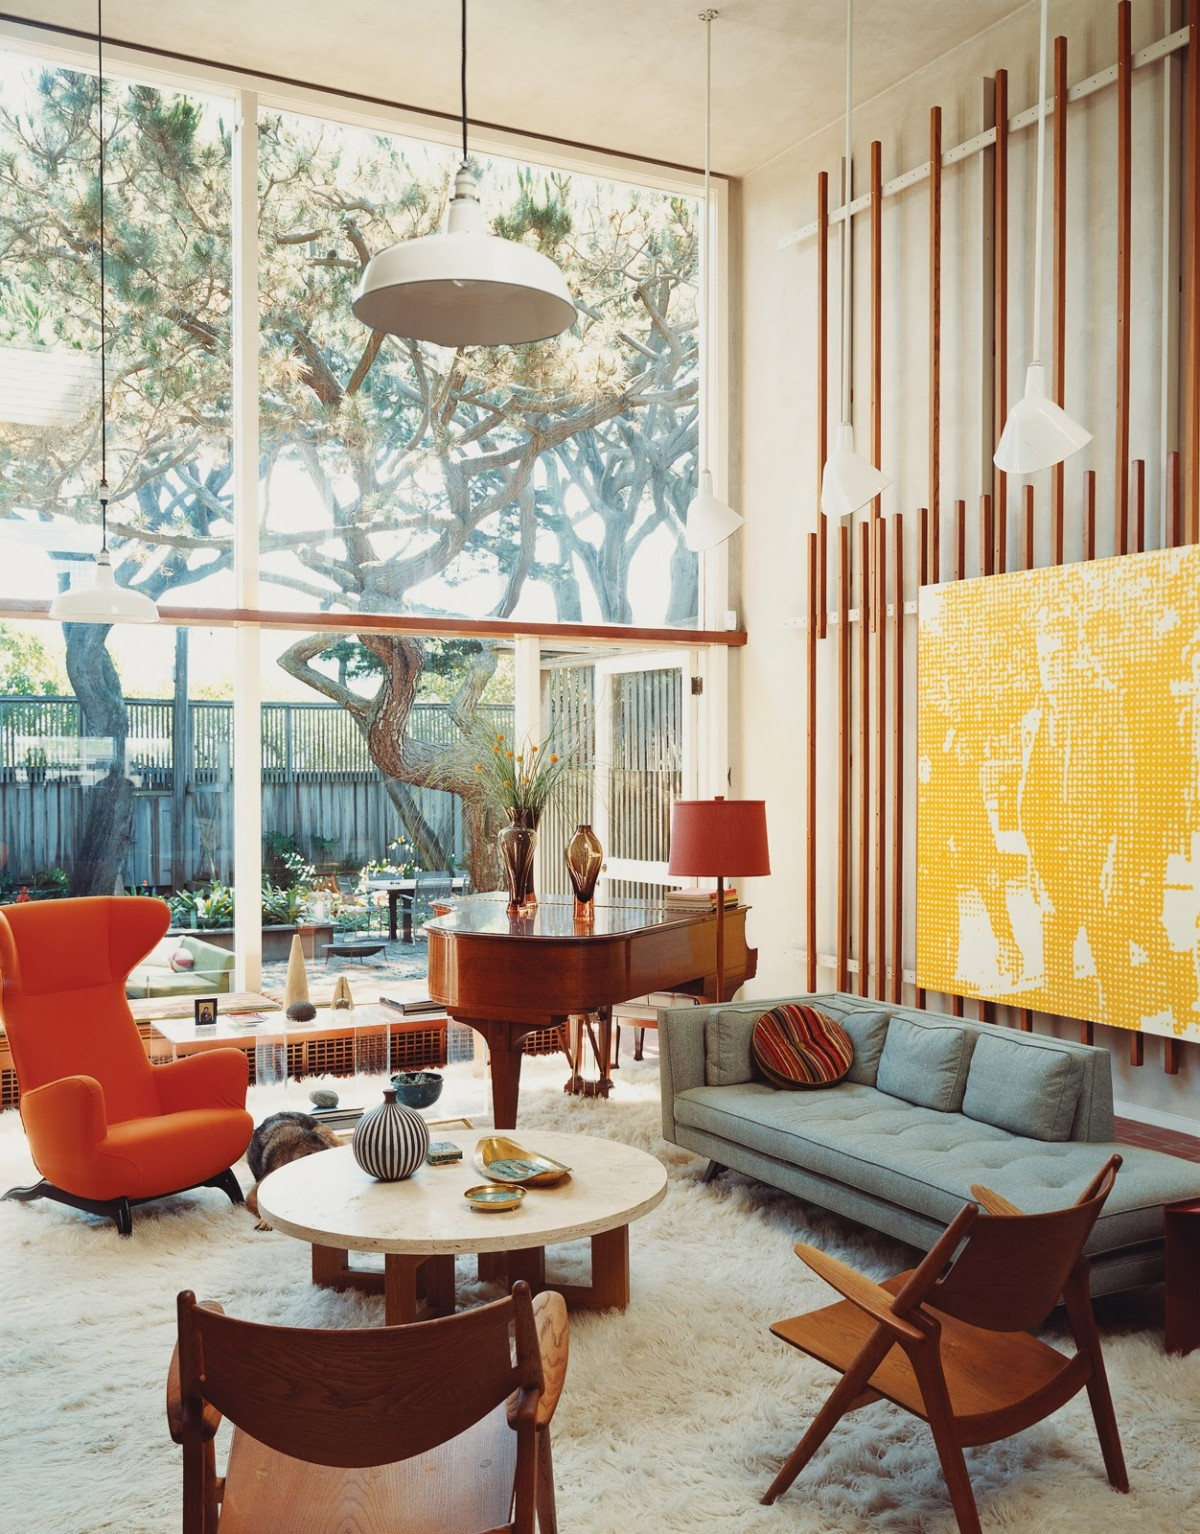 70s interior by robert schlatter